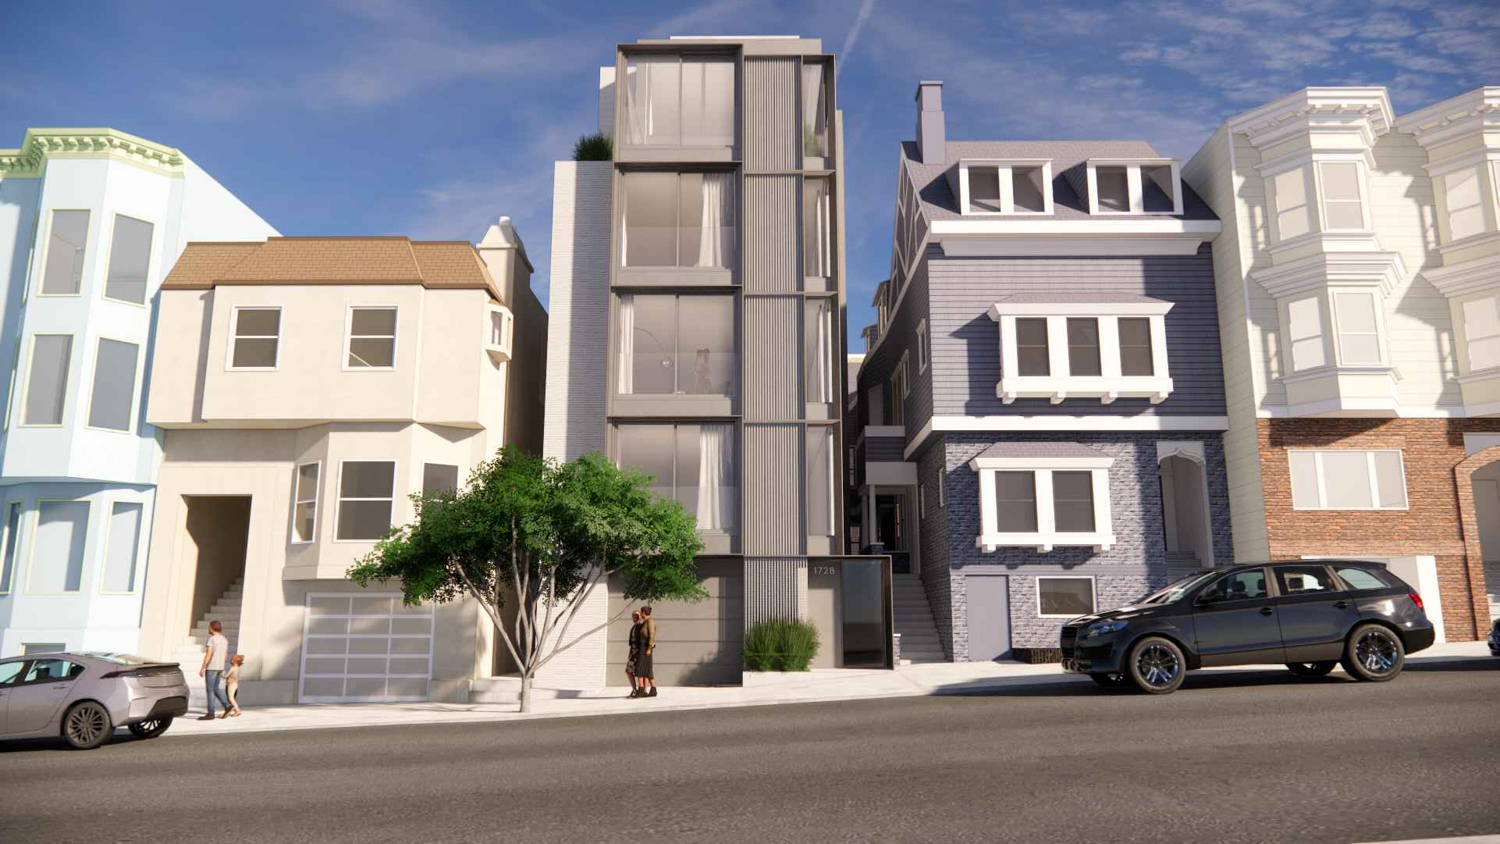 1728 Larkin Street, design by Dumican Mosey Architects